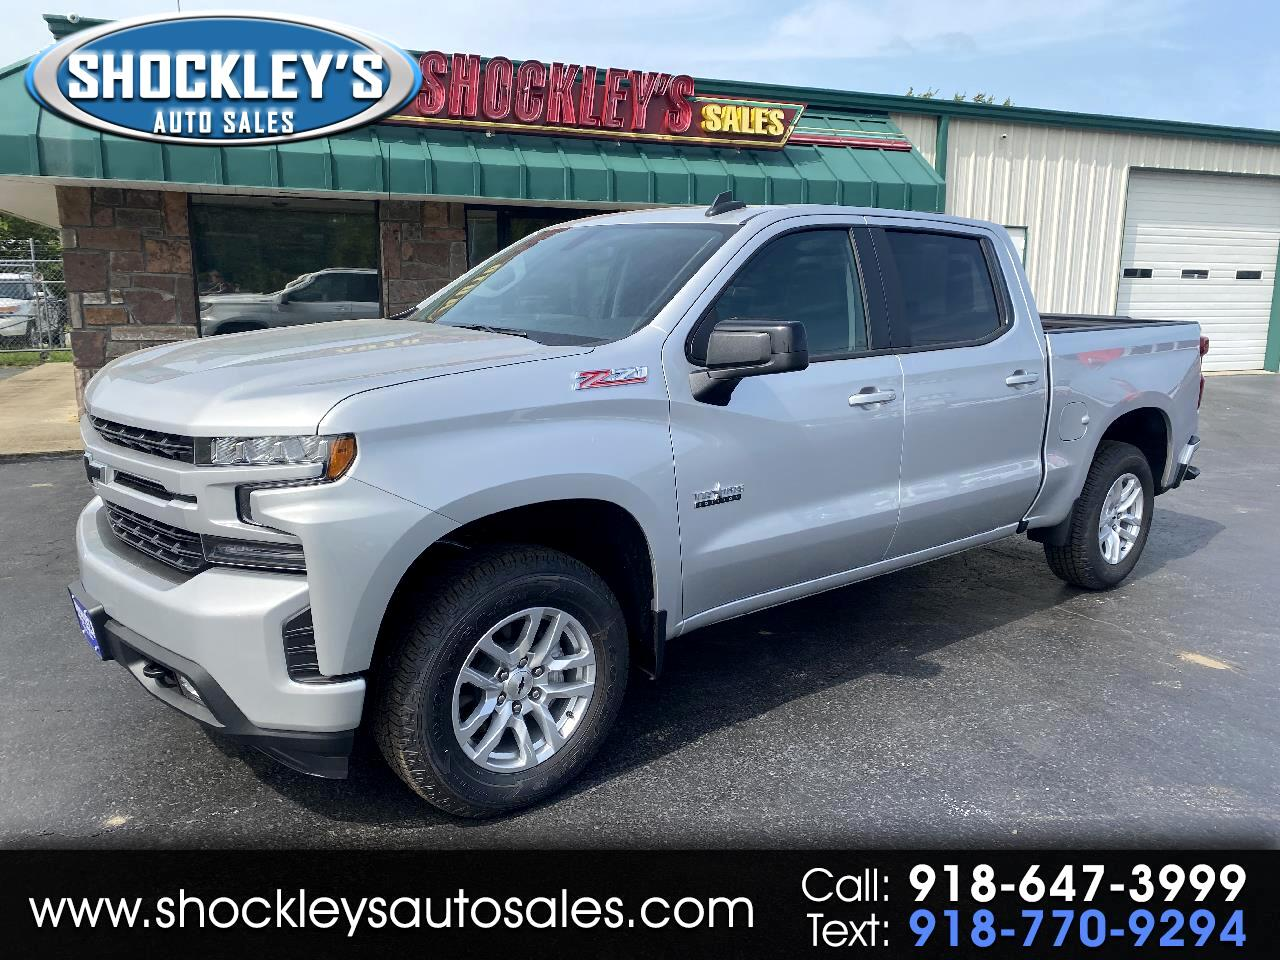 used cars for sale poteau ok 74953 shockley s auto sales poteau ok 74953 shockley s auto sales